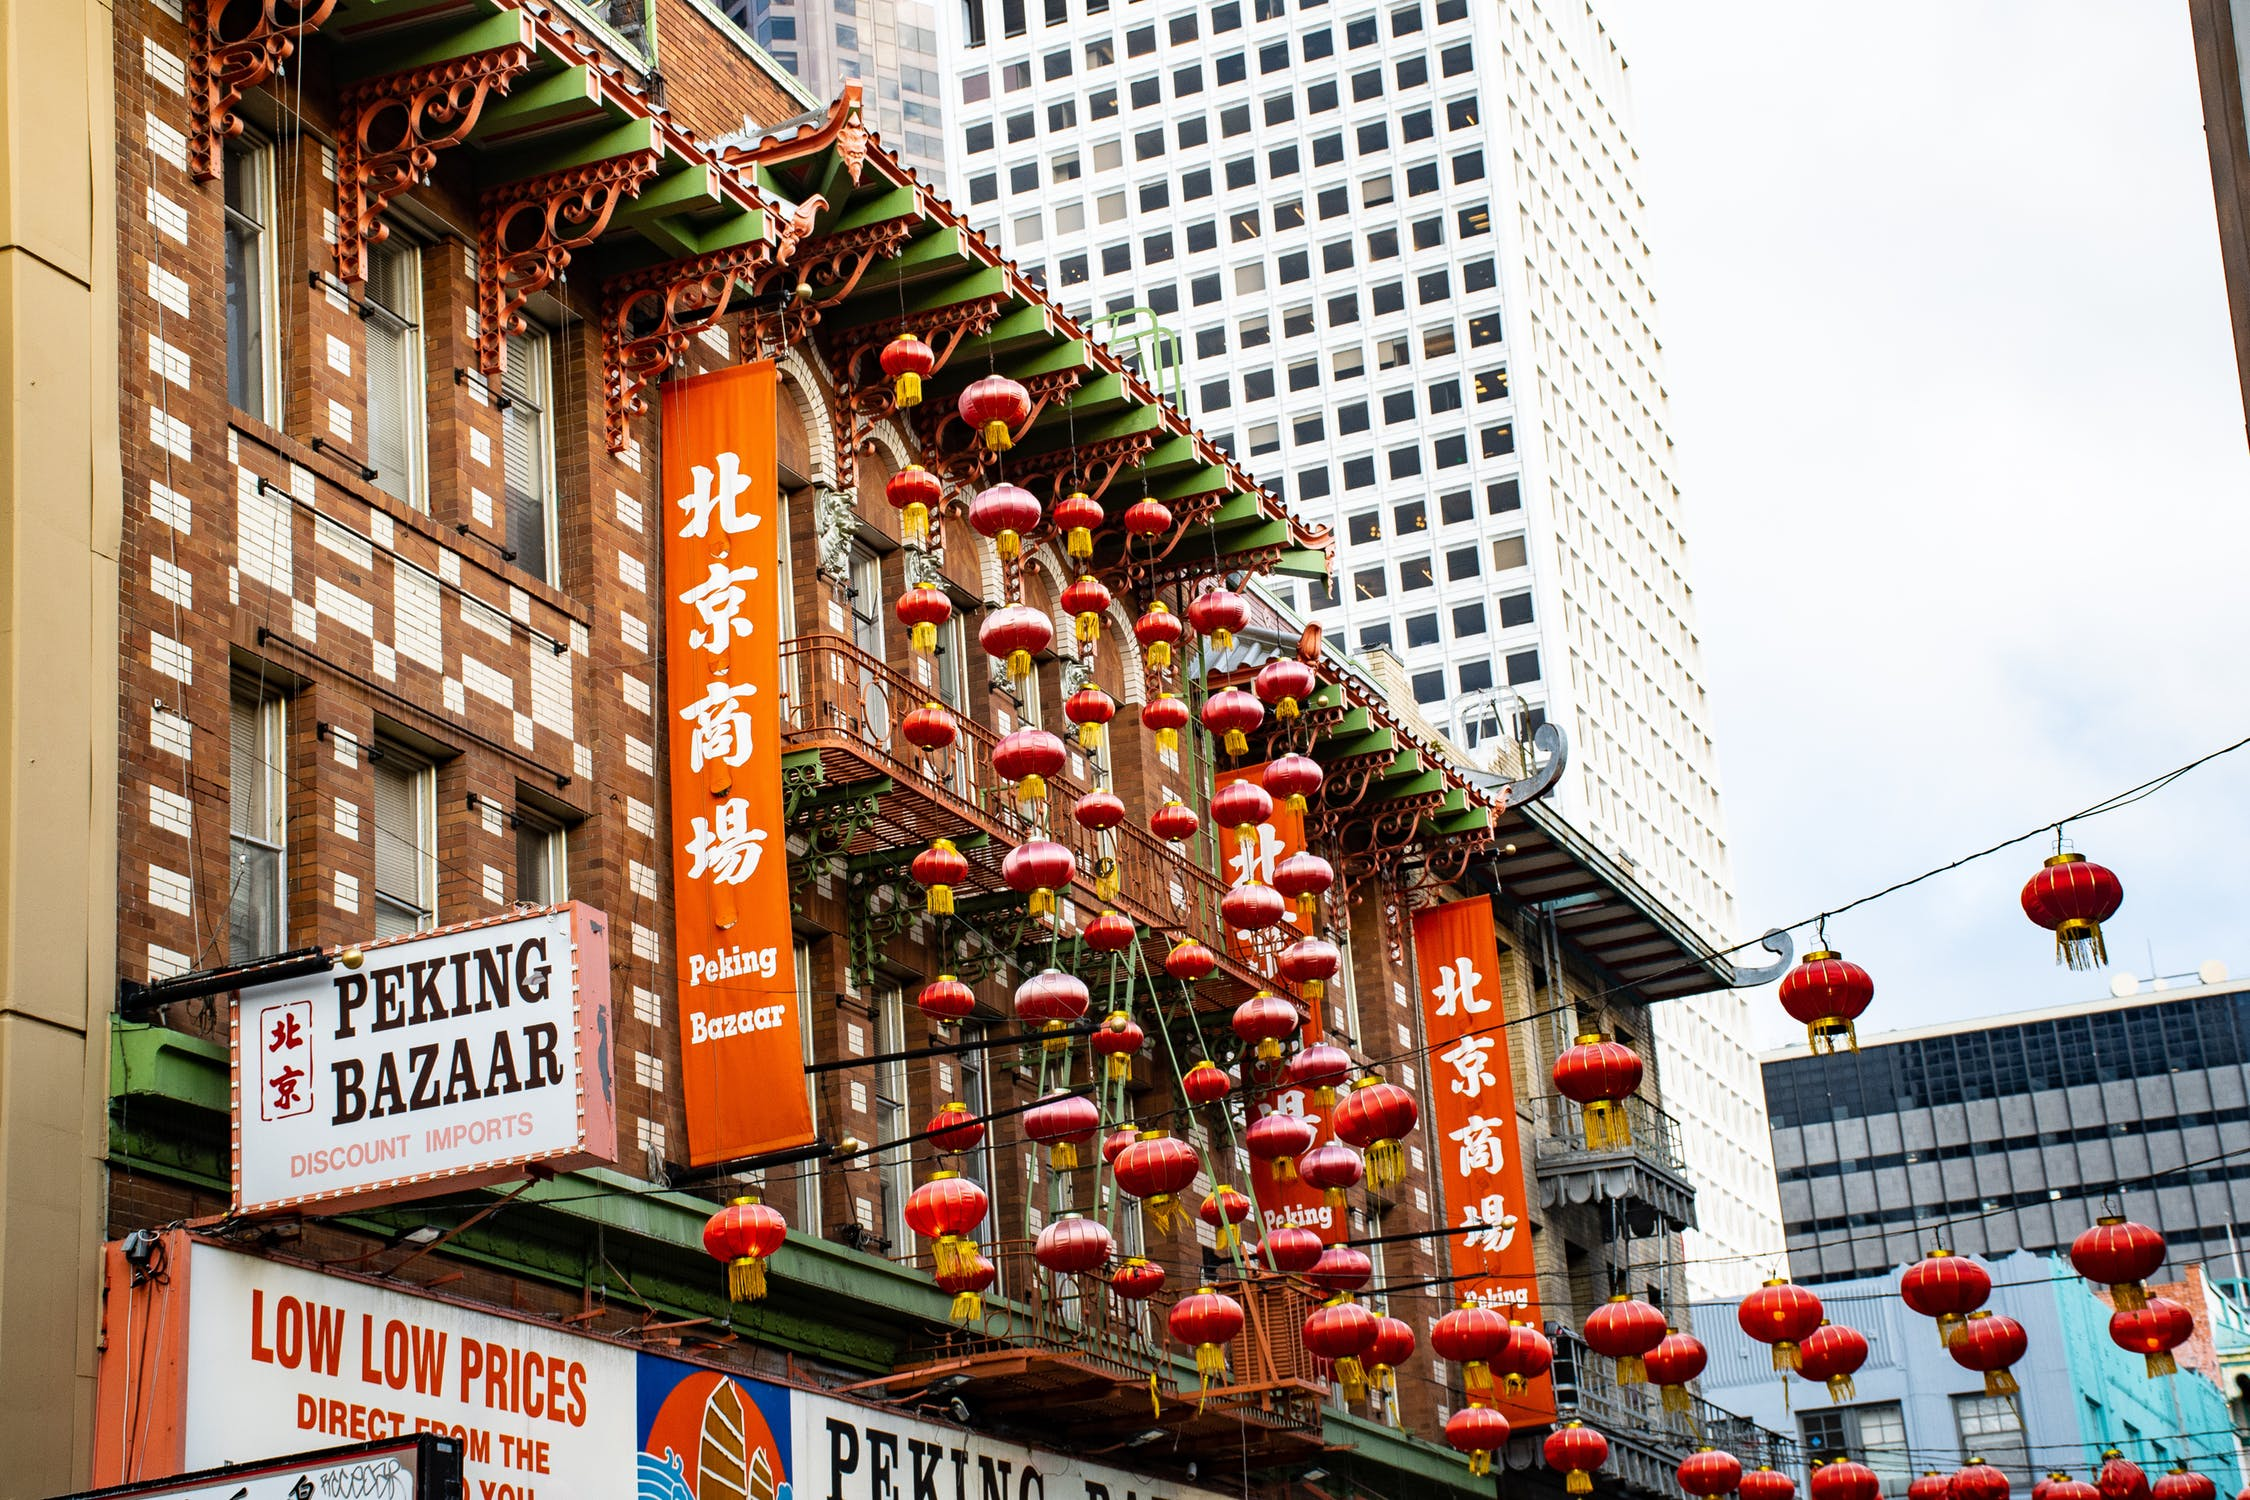 Chinatown neighborhoods for young professionals